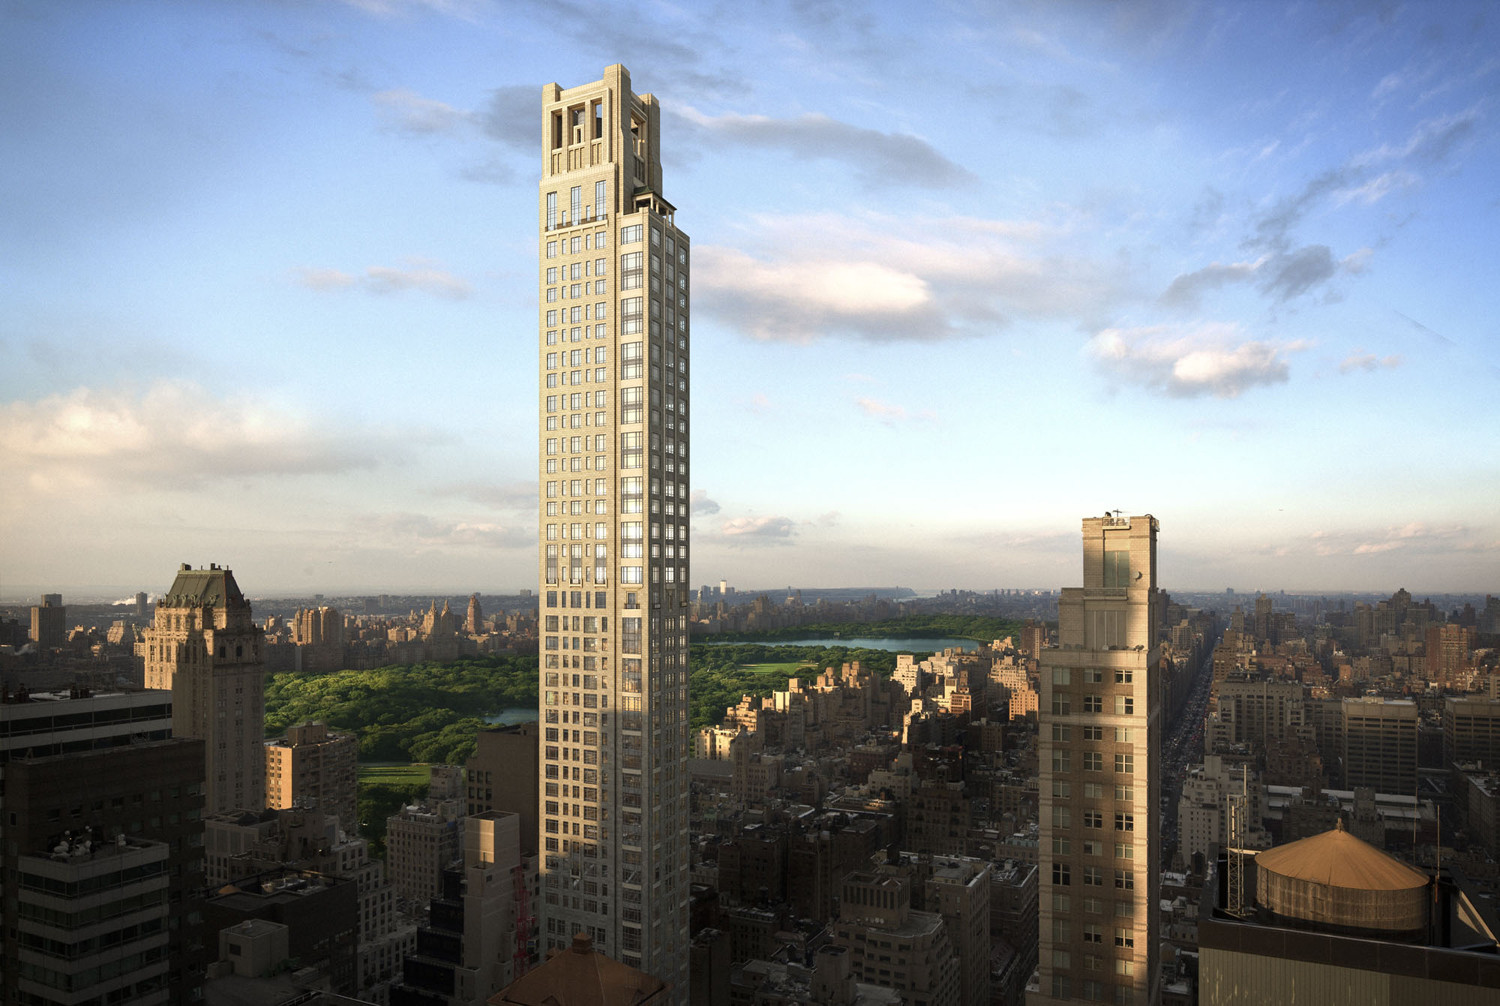 Robert A.M. Stern Tops NYC Tower with $100 Million Penthouse, © Zeckendorf Development LLC and Seventh Art; Courtesy of Curbed NY